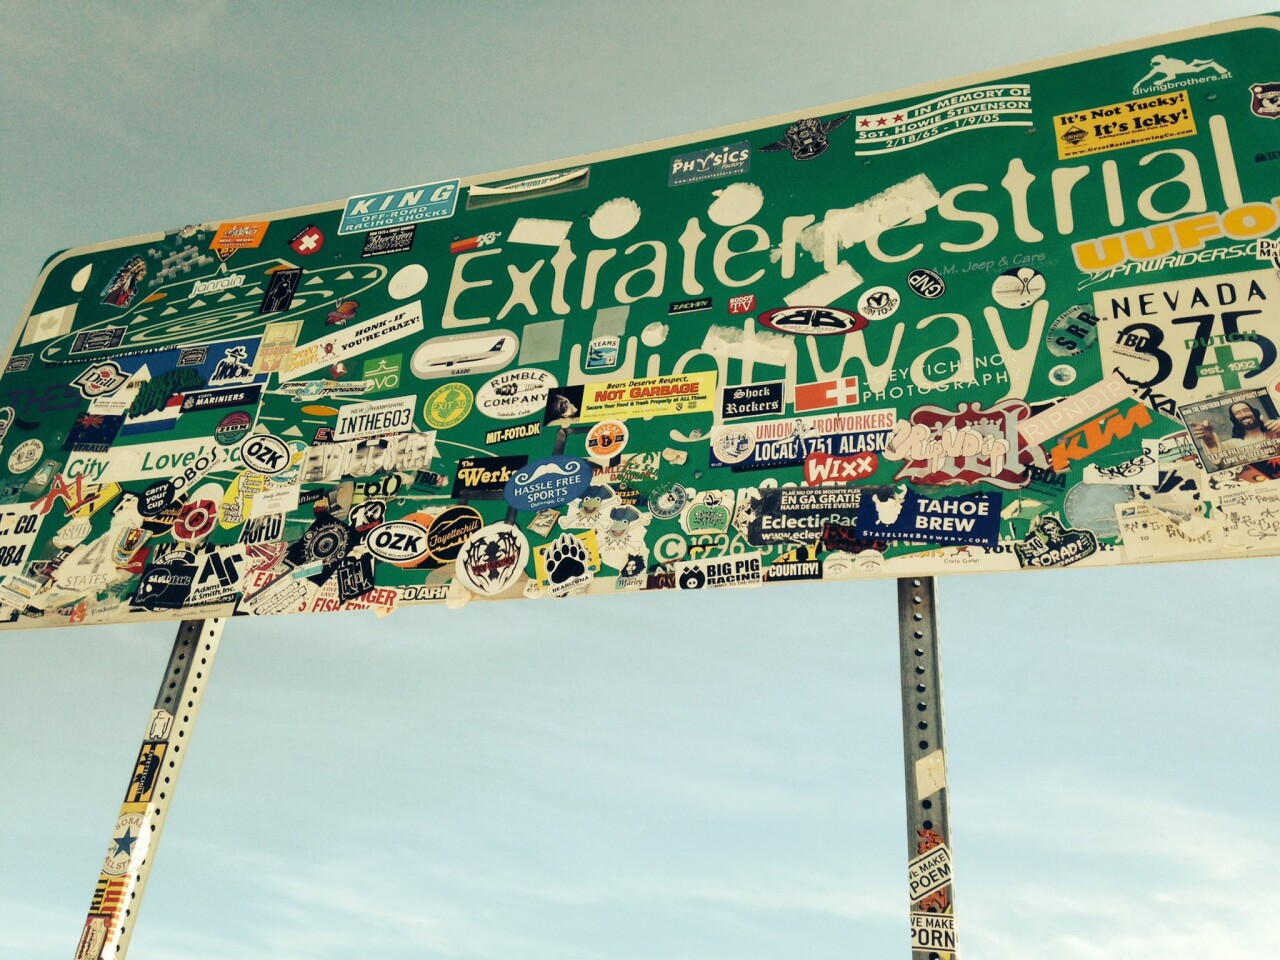 Respect for the purity of public property apparently is alien at this Extraterrestrial Highway sign in central Nevada.